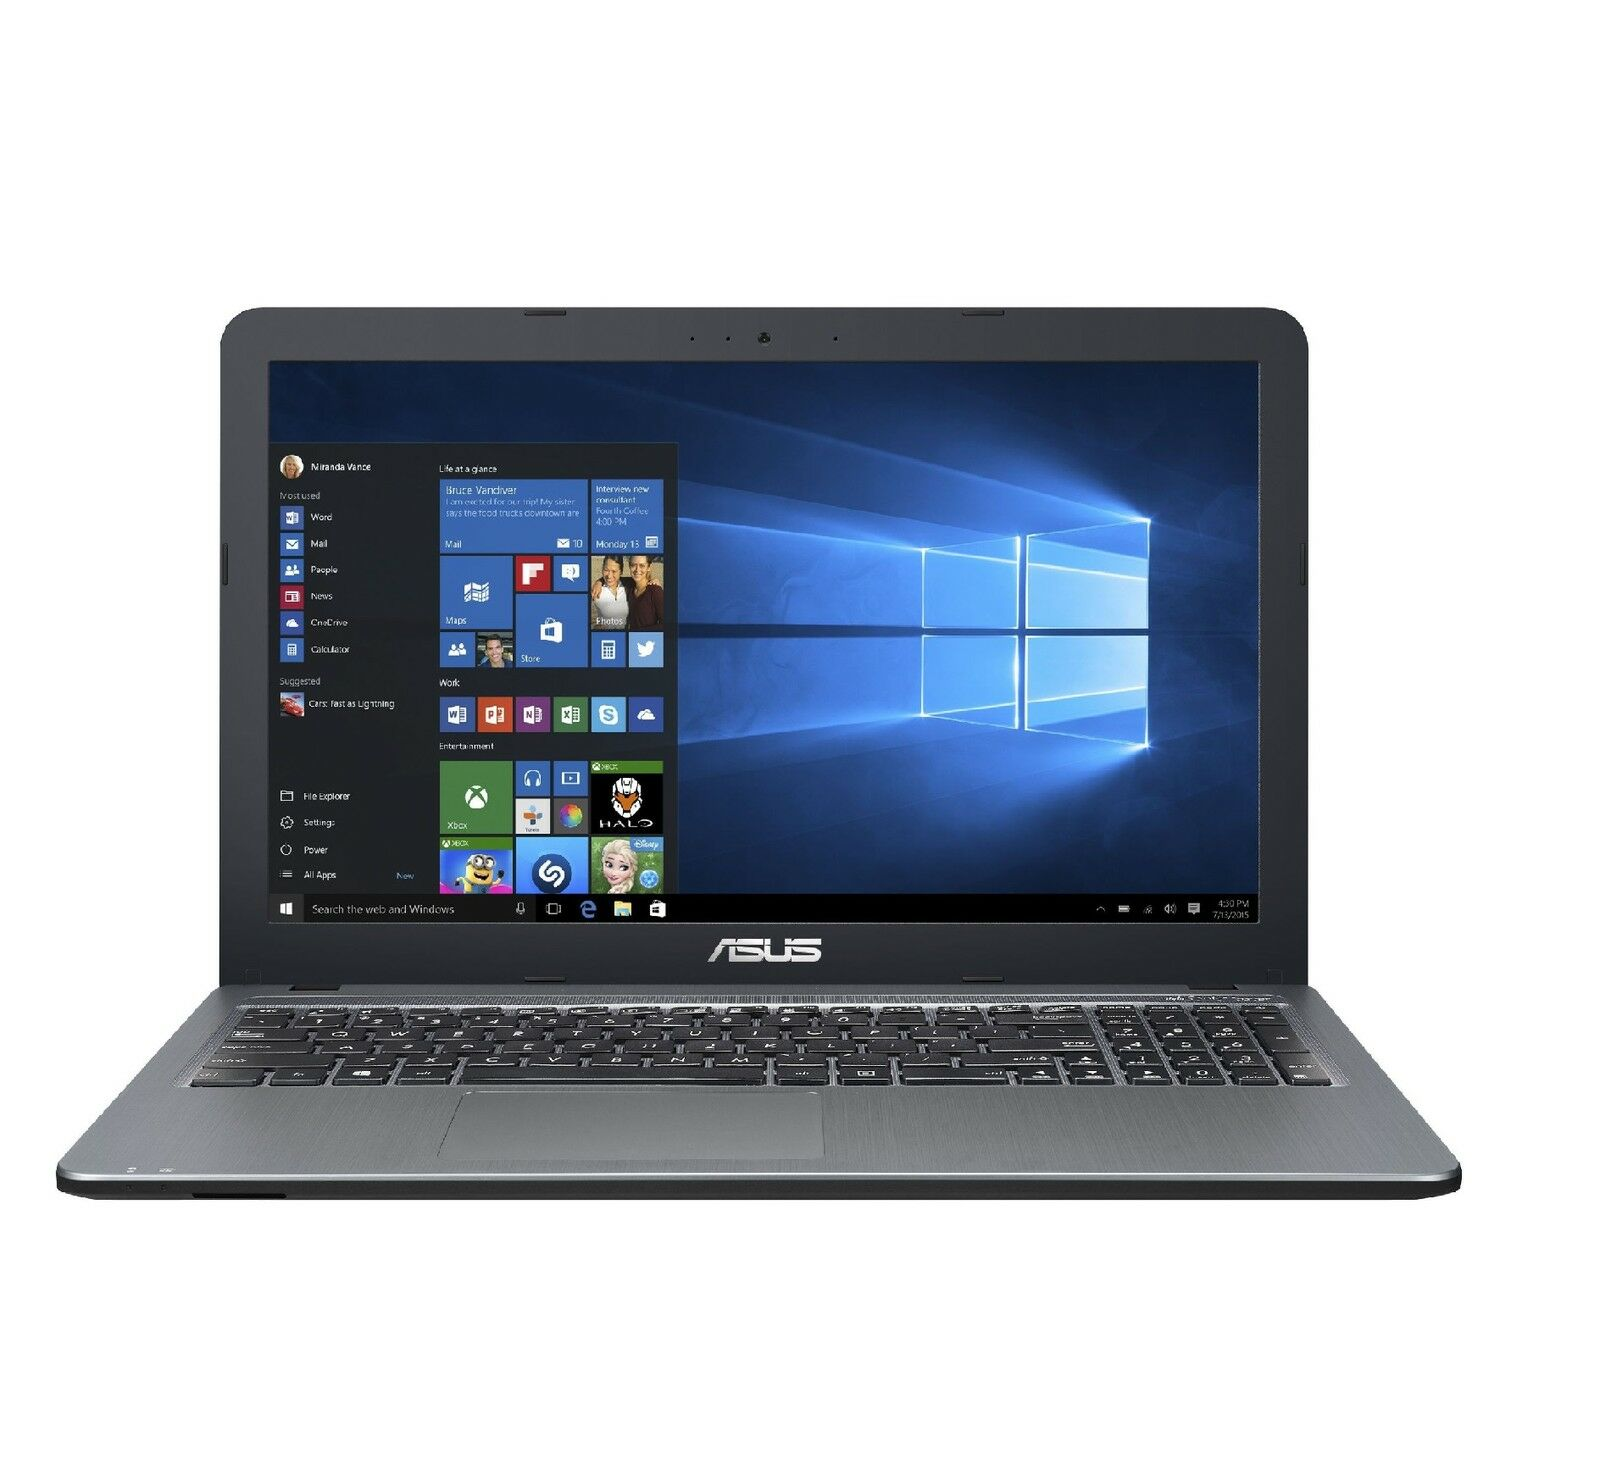 Asus Notebook 15,6 Zoll - Intel Core 2,48 GHz - 500 GB - USB 3.1 Windows 10 Pro - 1